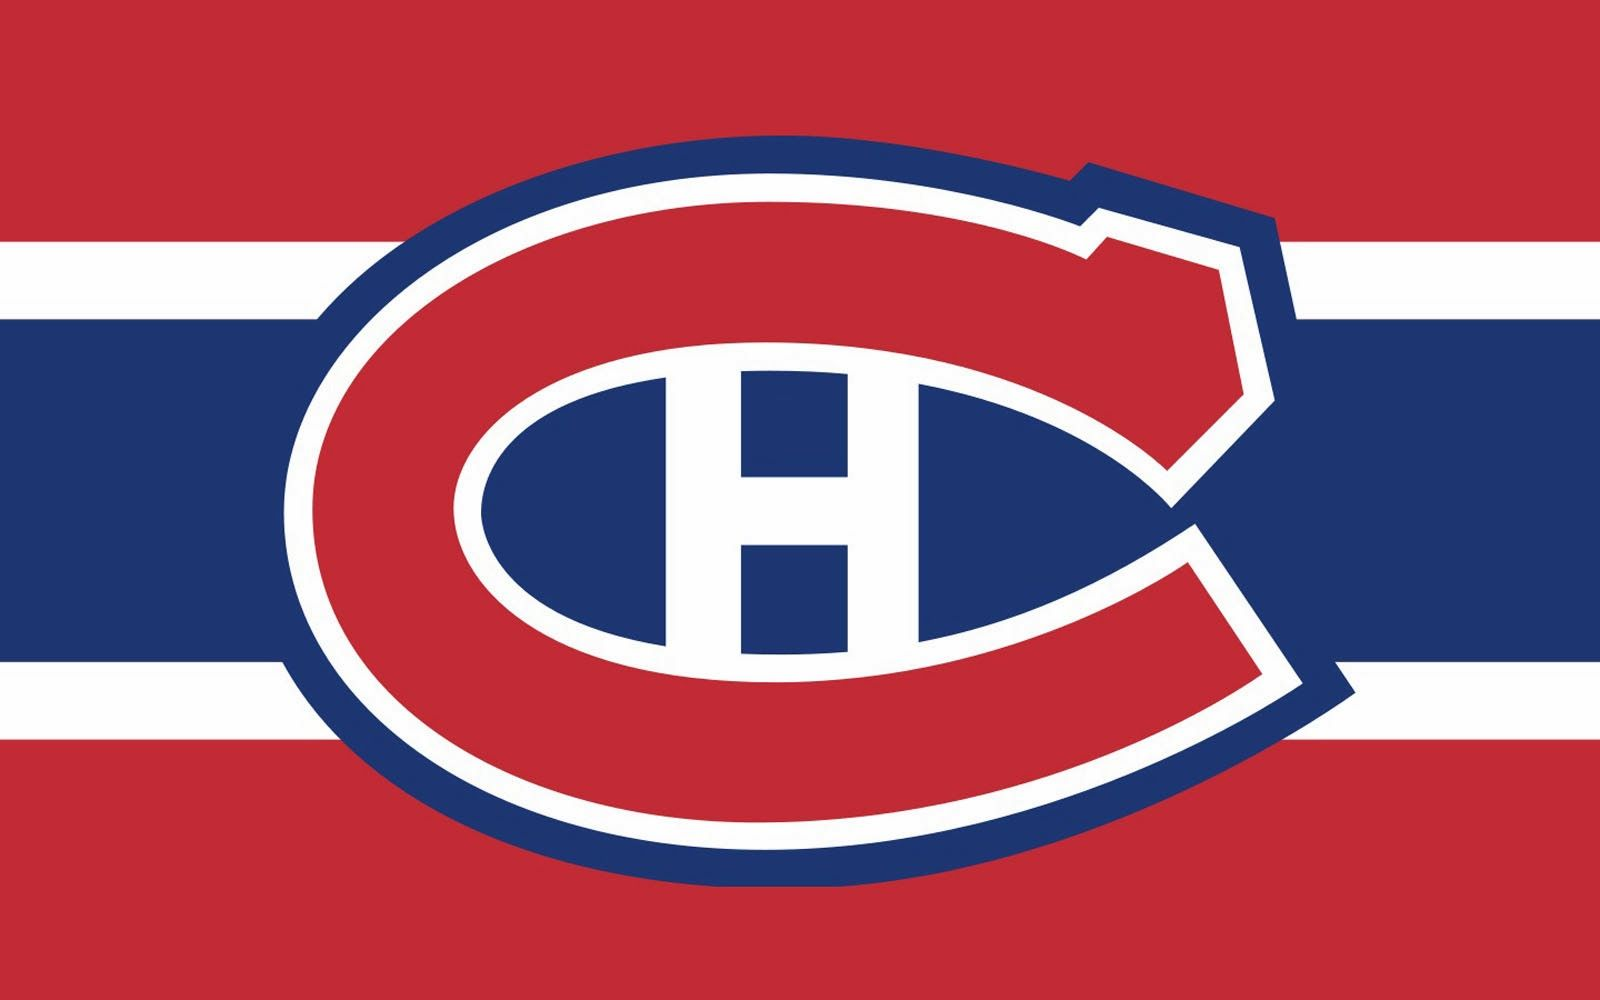 Wallpapers Montreal Canadiens Wallpapers In 2020 Montreal Canadiens Hockey Montreal Canadiens Canadiens